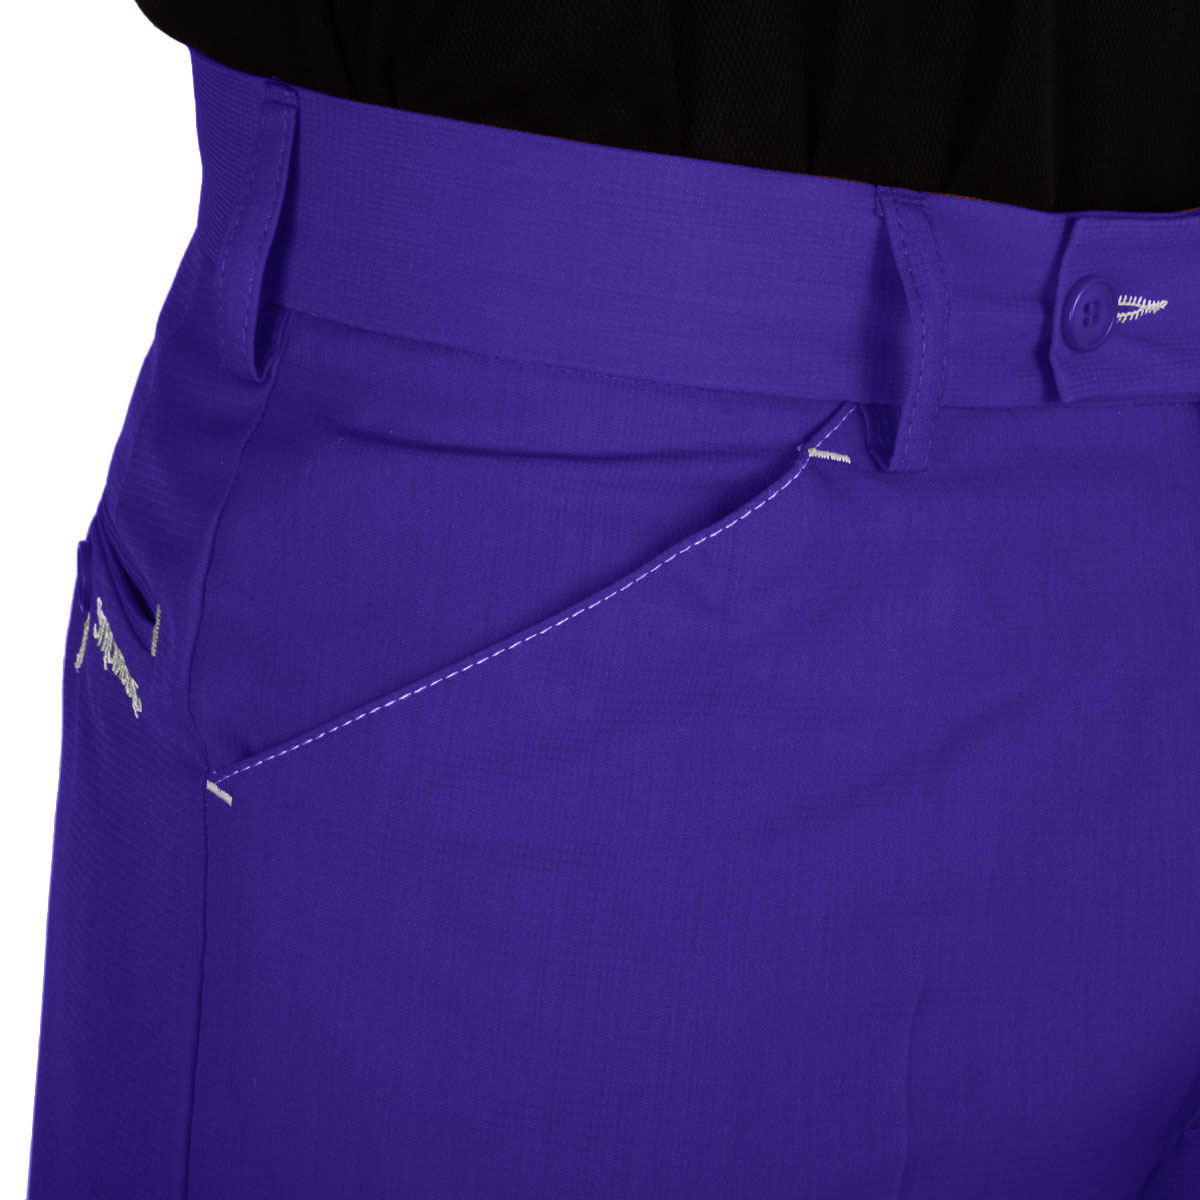 Stromberg-Mens-Sintra-Slim-Fit-Technical-Funky-Golf-Trousers-40-OFF-RRP thumbnail 16